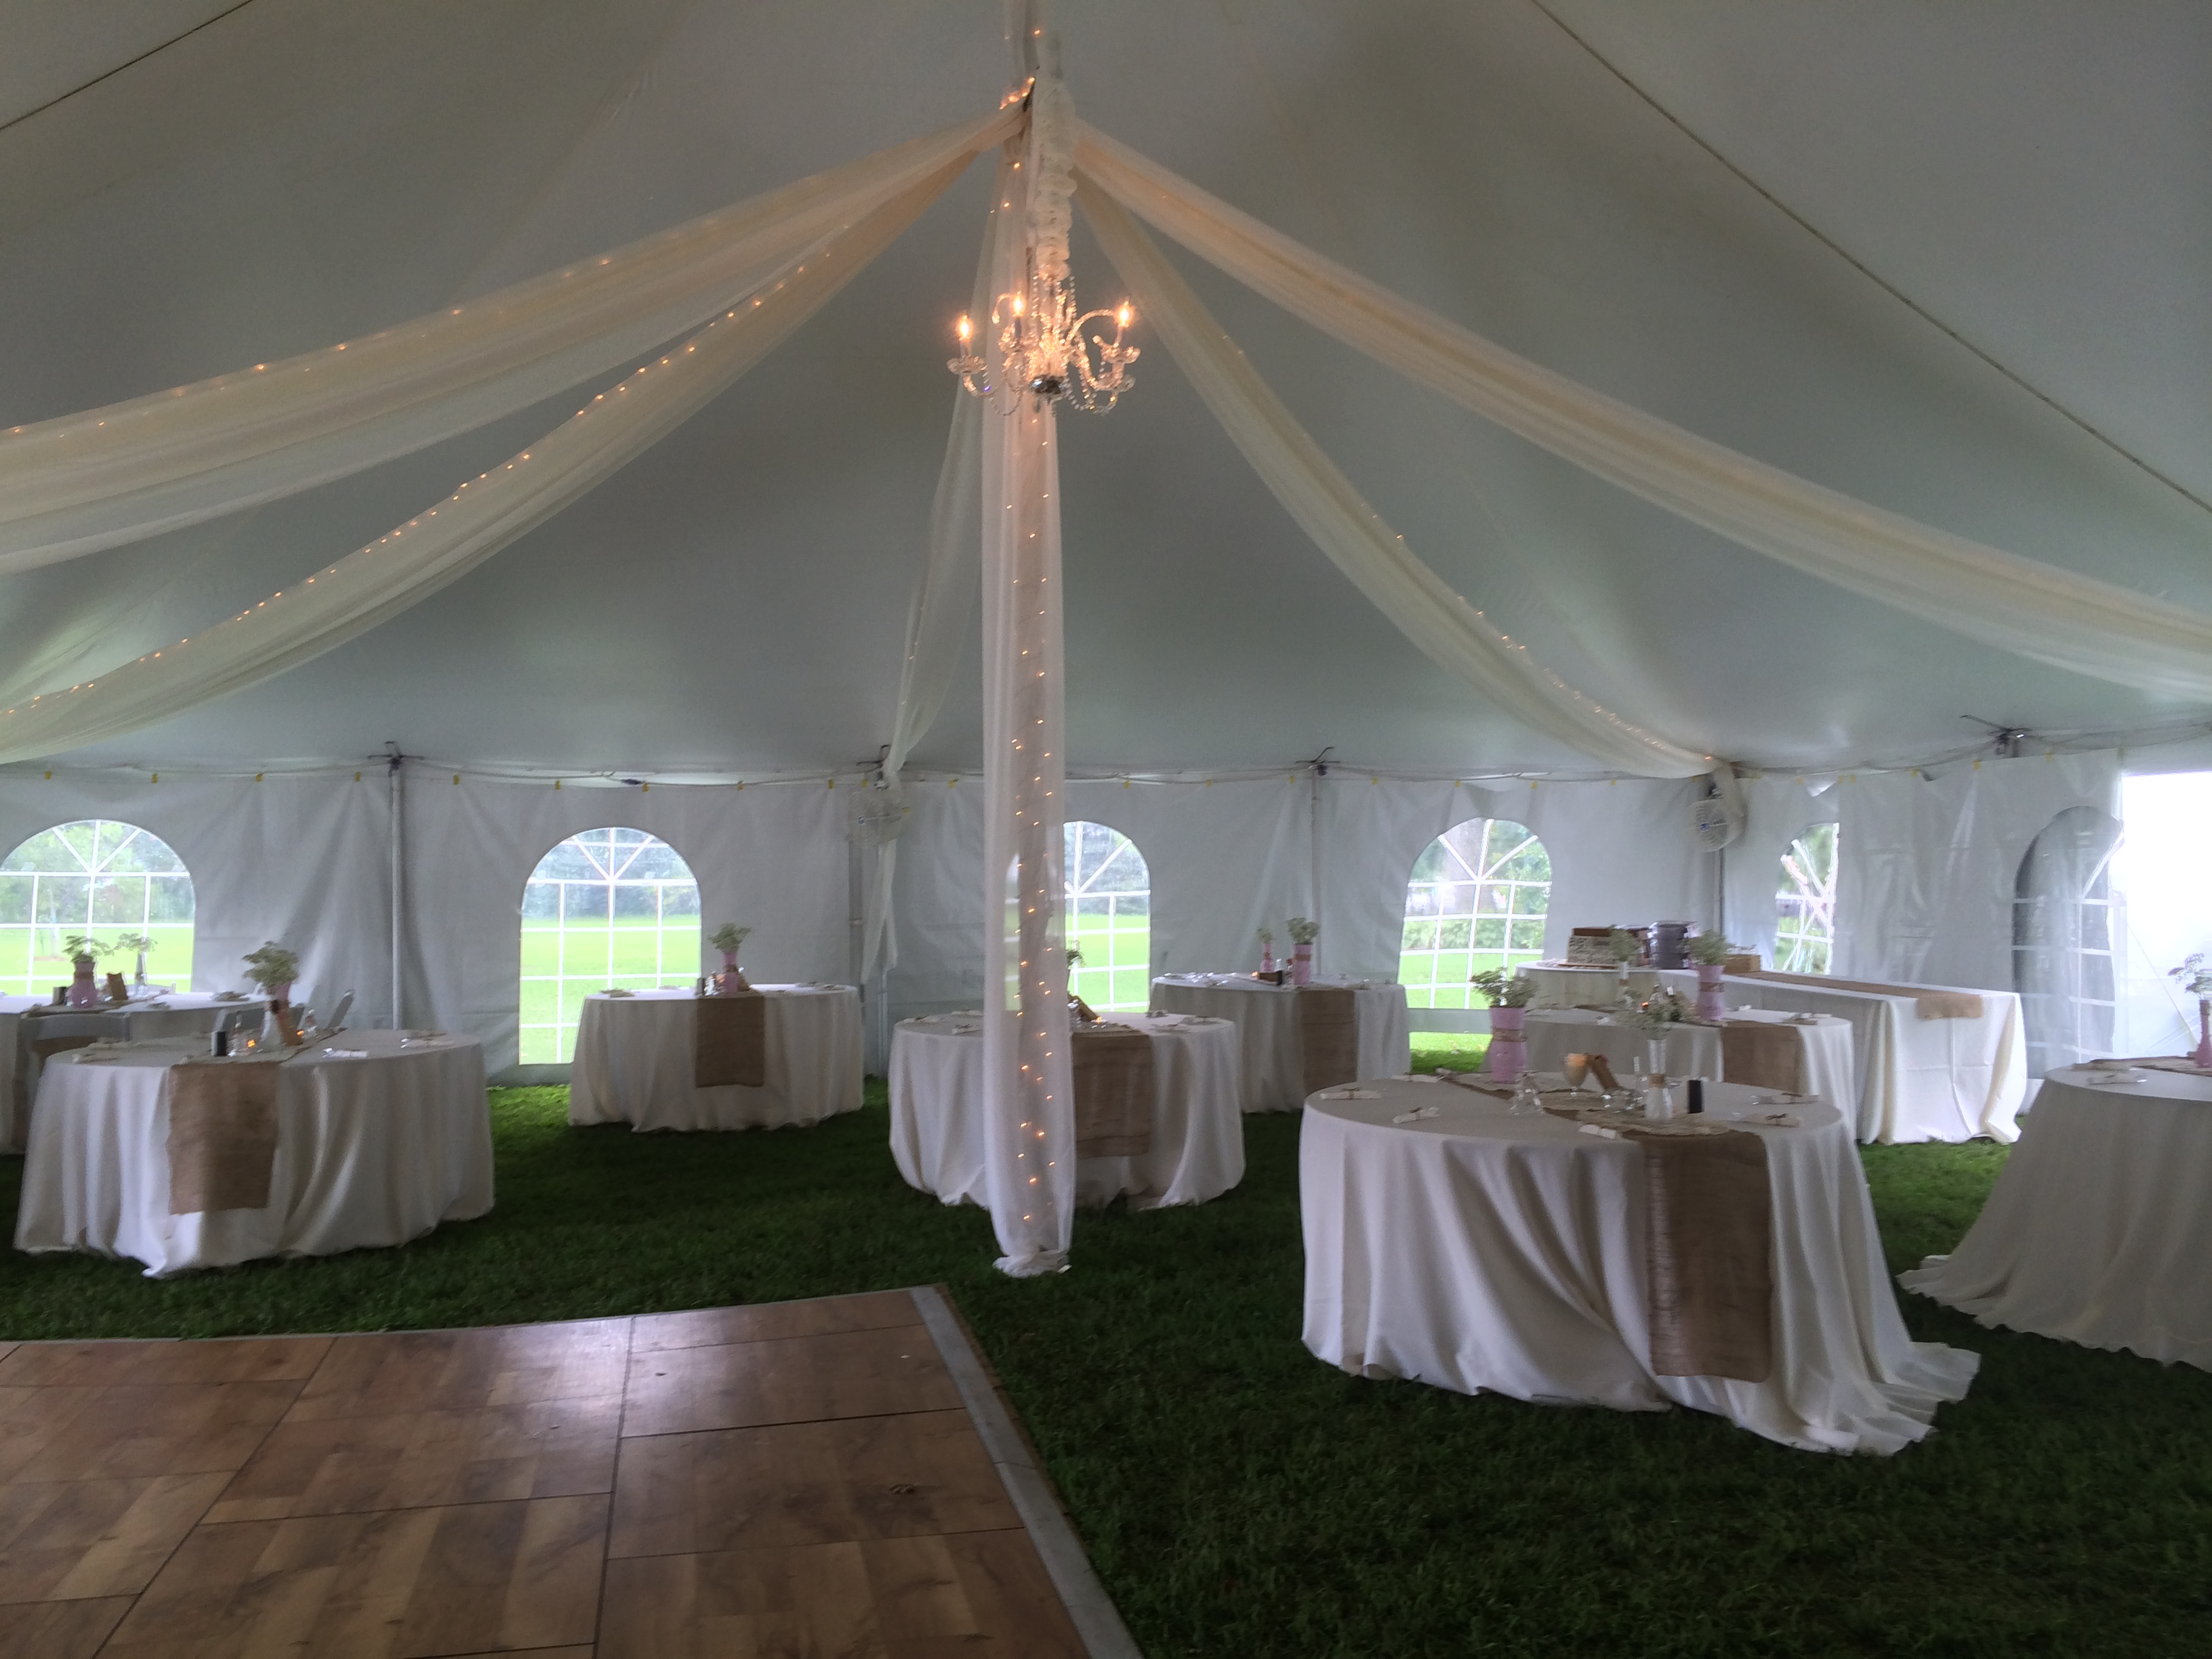 Tent Kiting with Sting & Wedding Accessories Table Rentals Chair Rentals Dance Floor ...